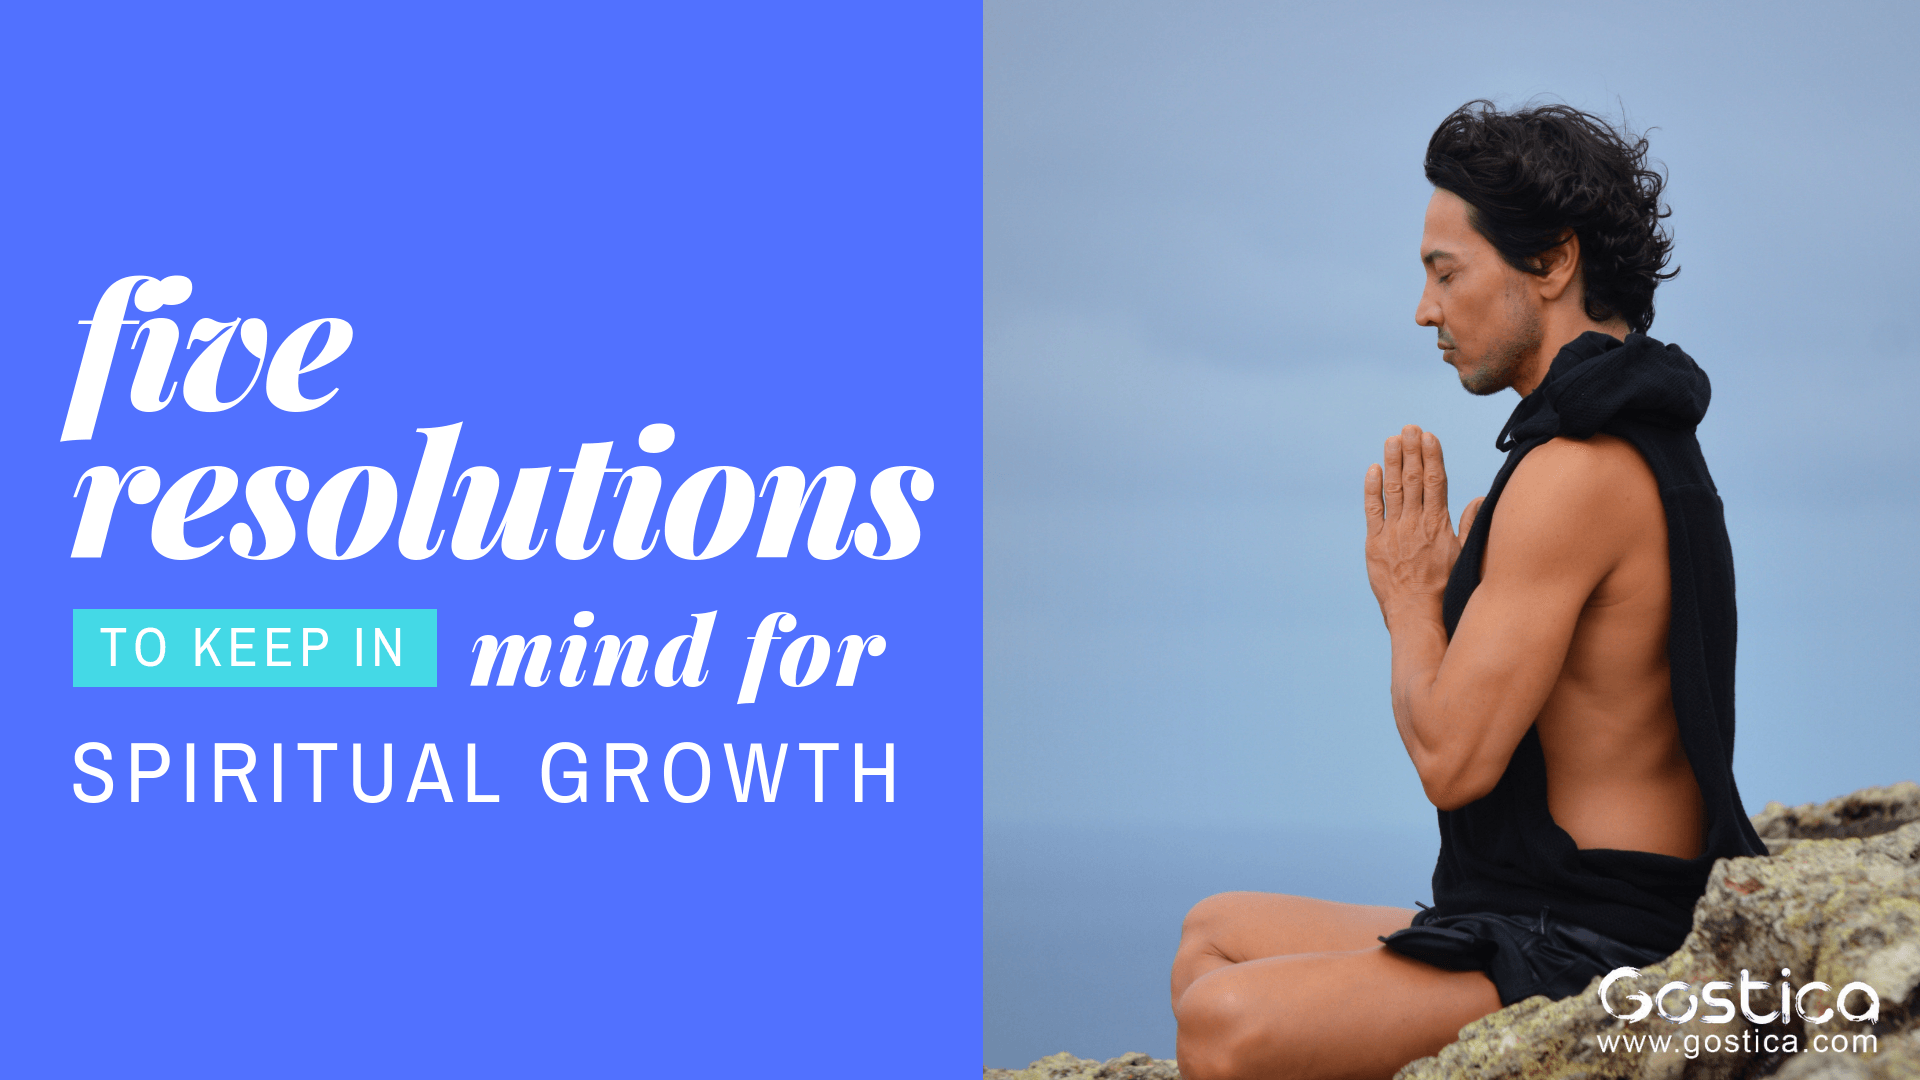 Spiritual, Resolutions, Spiritual Growth